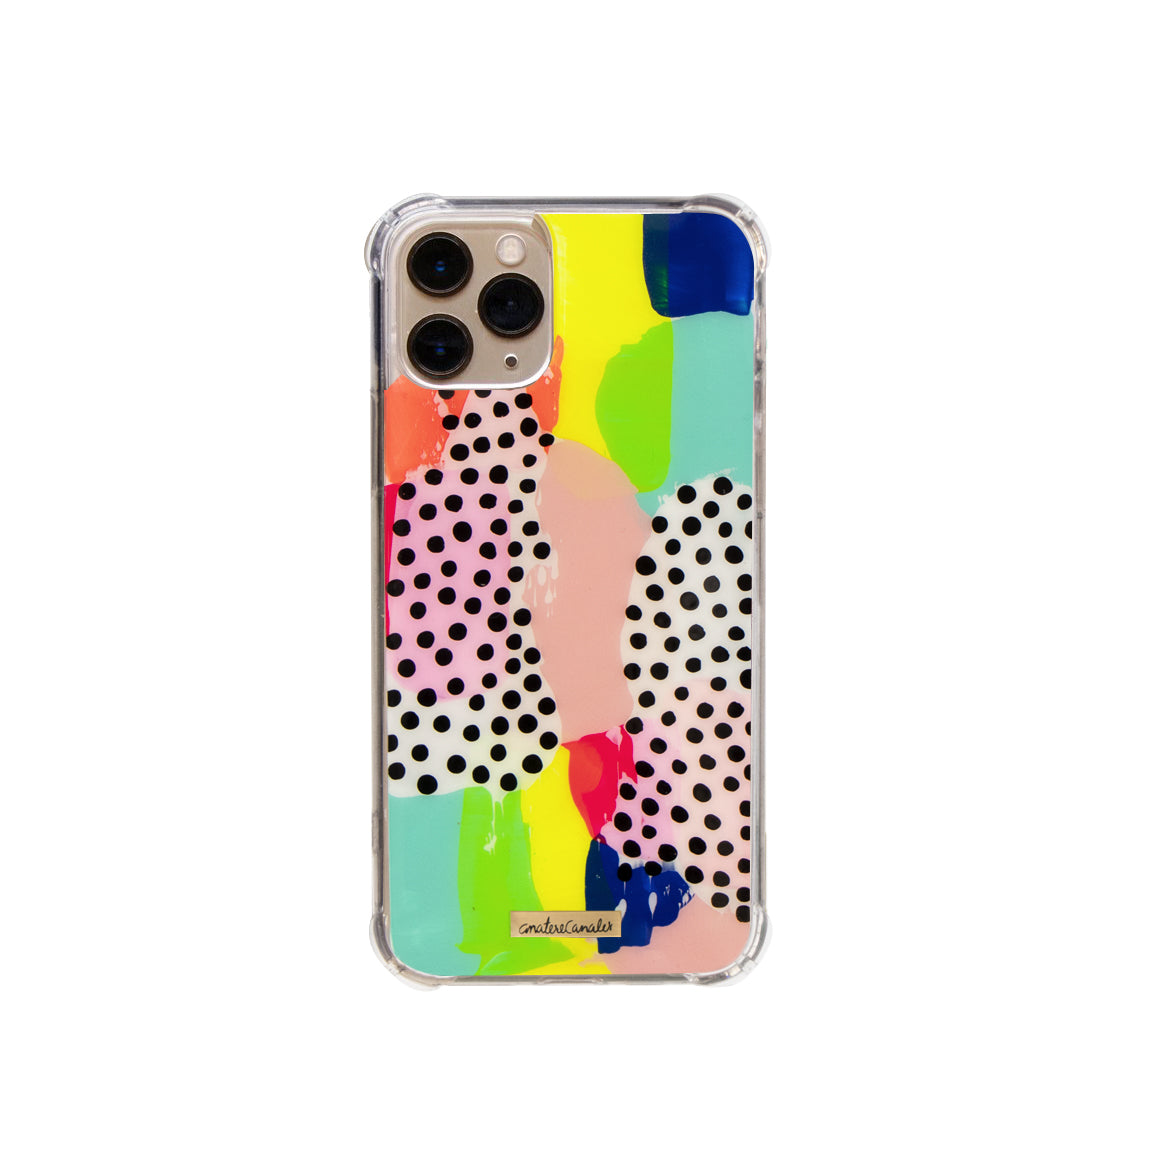 Brainstorm Case/Funda para iPhone/Samsung - Ana Tere Canales